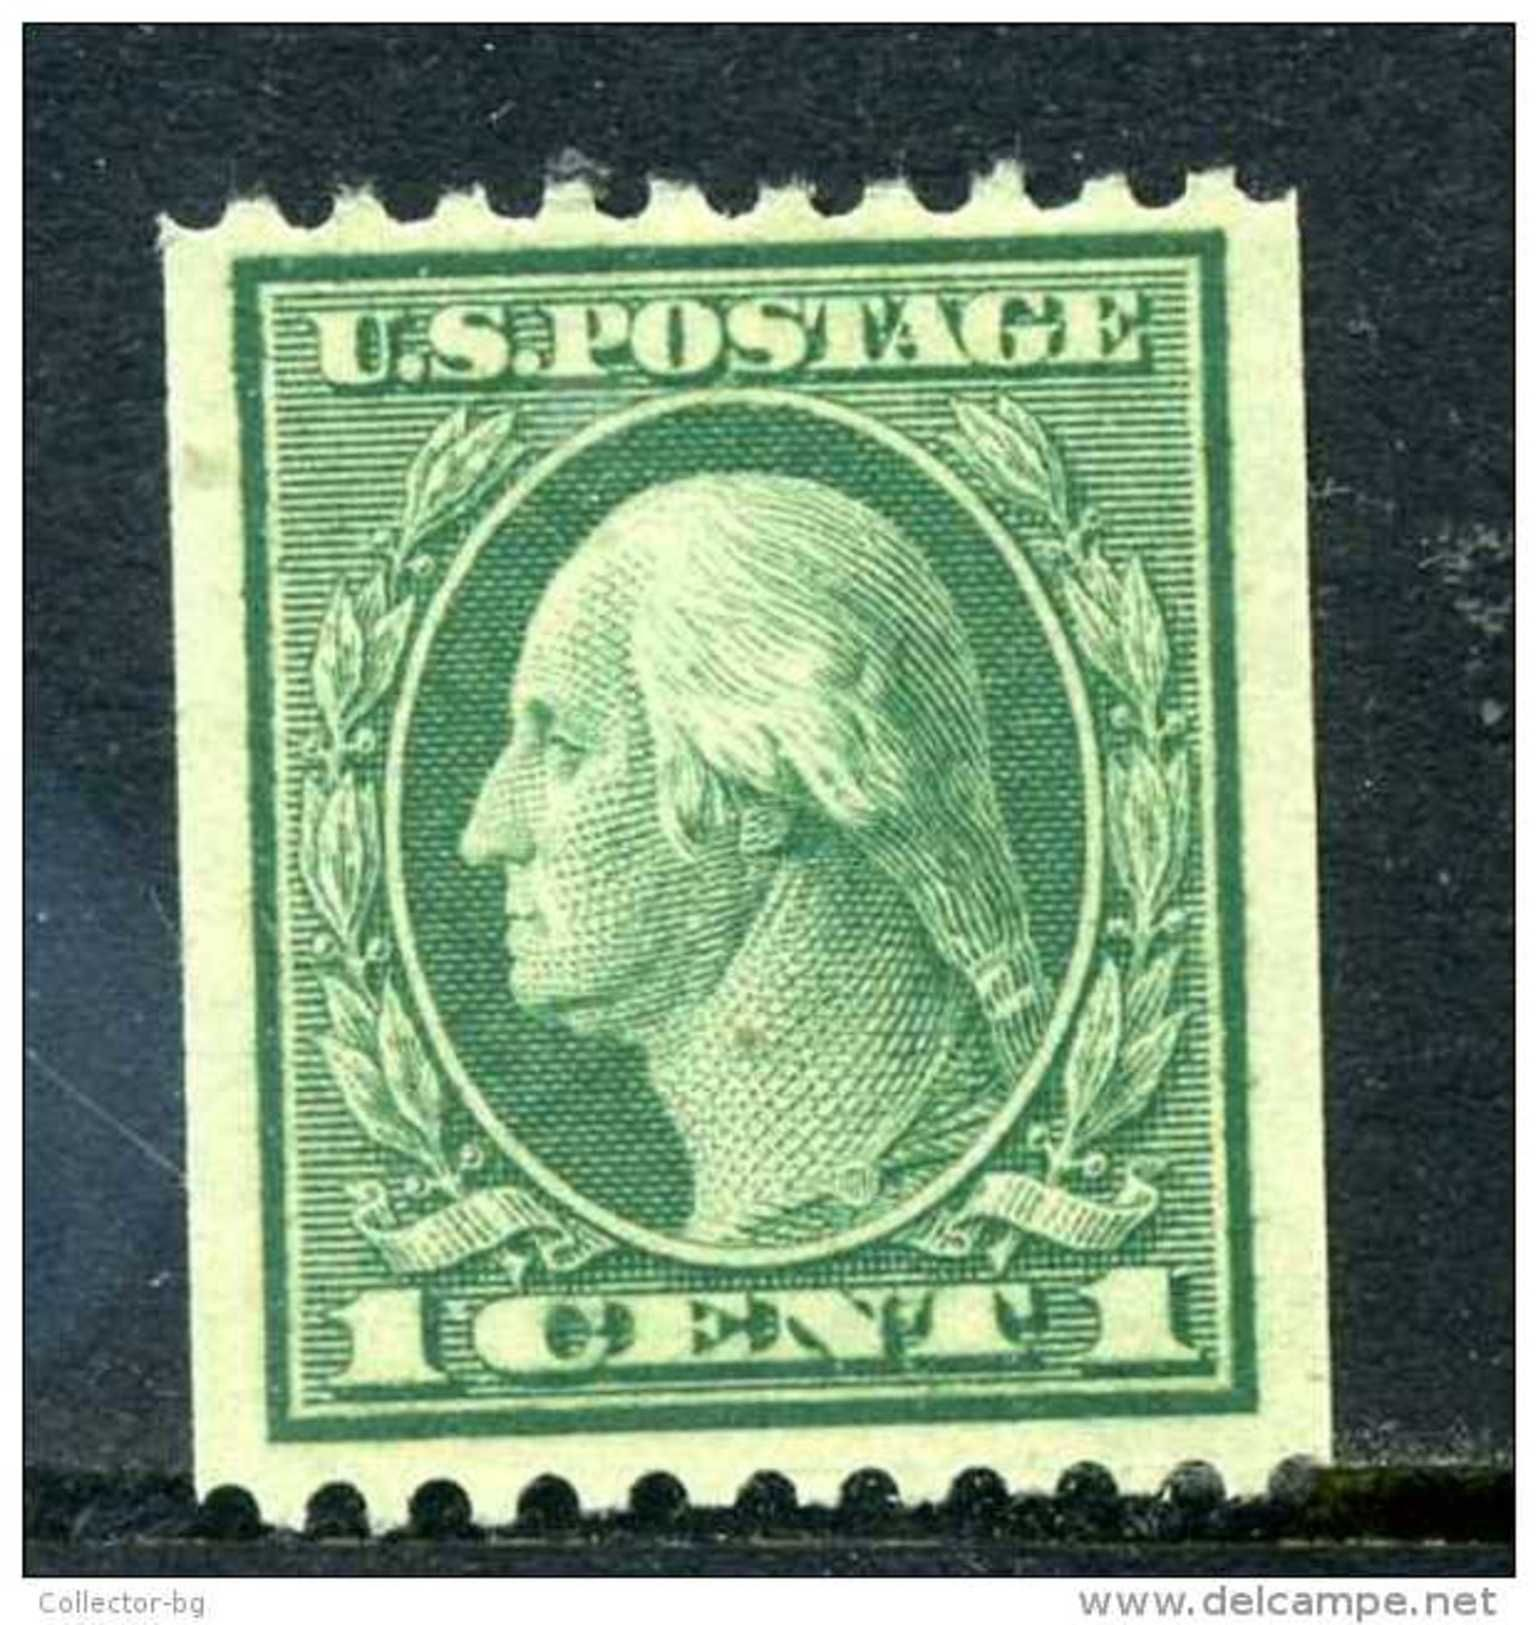 ULTRA RARE RRR 1 CENT US POSTAGE GREEN FRESH COLOR USA WASHINGTON IMPERF SUPERB STAMP TIMBRE